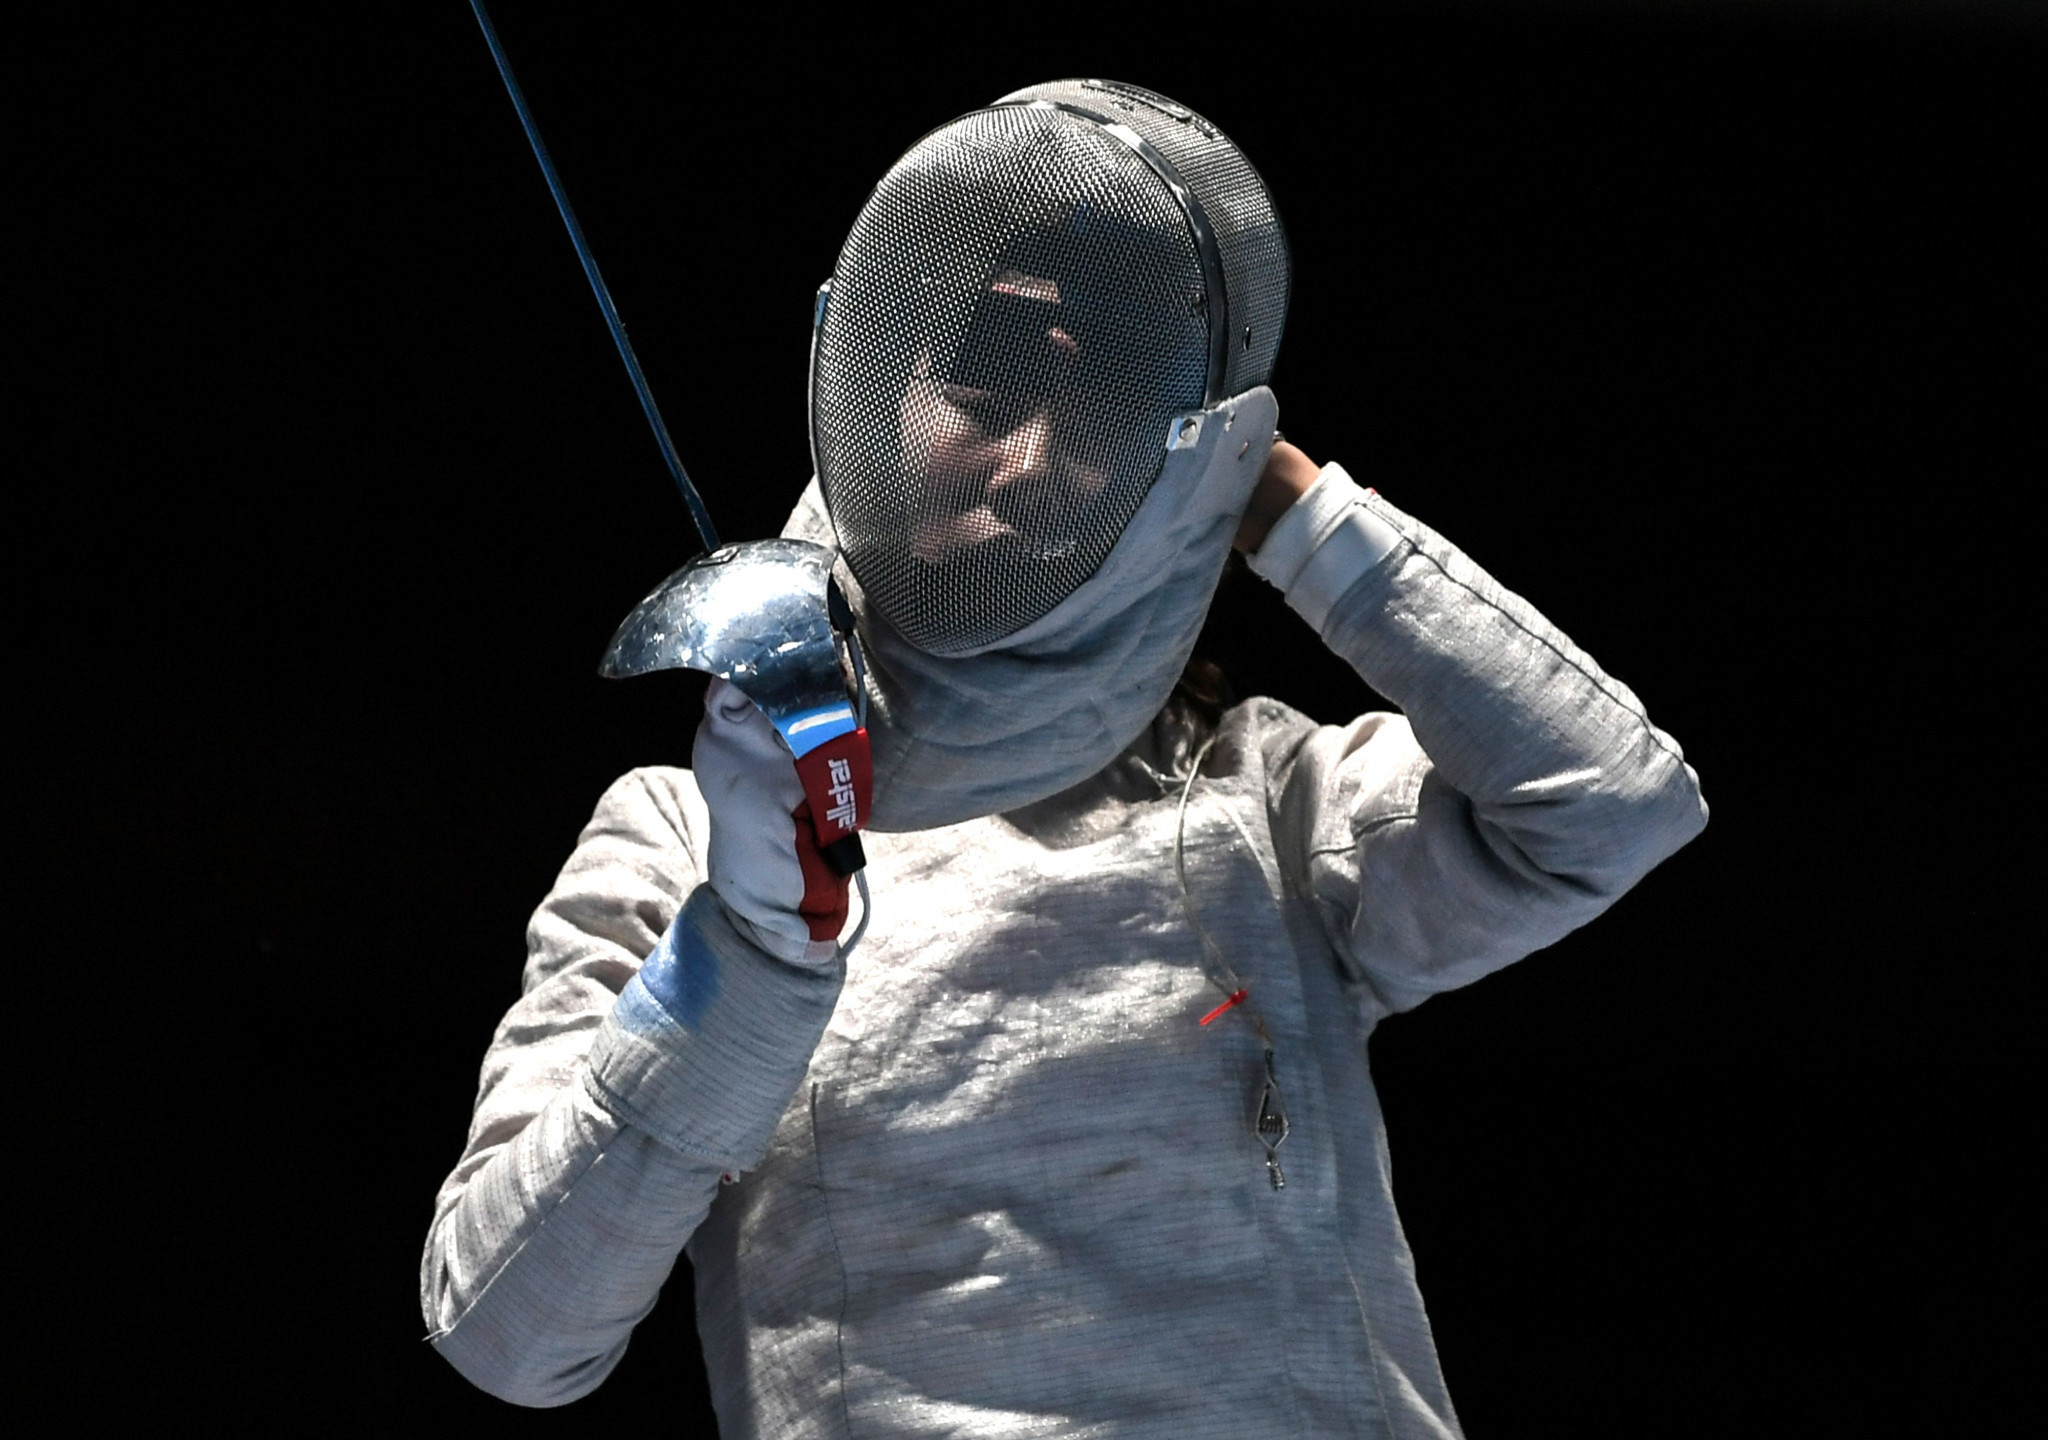 South Korea's London 2012 Olympic champion Kim Ji-yeon is defending her title in the women's sabre at the Asian Fencing Championships ©Getty Images